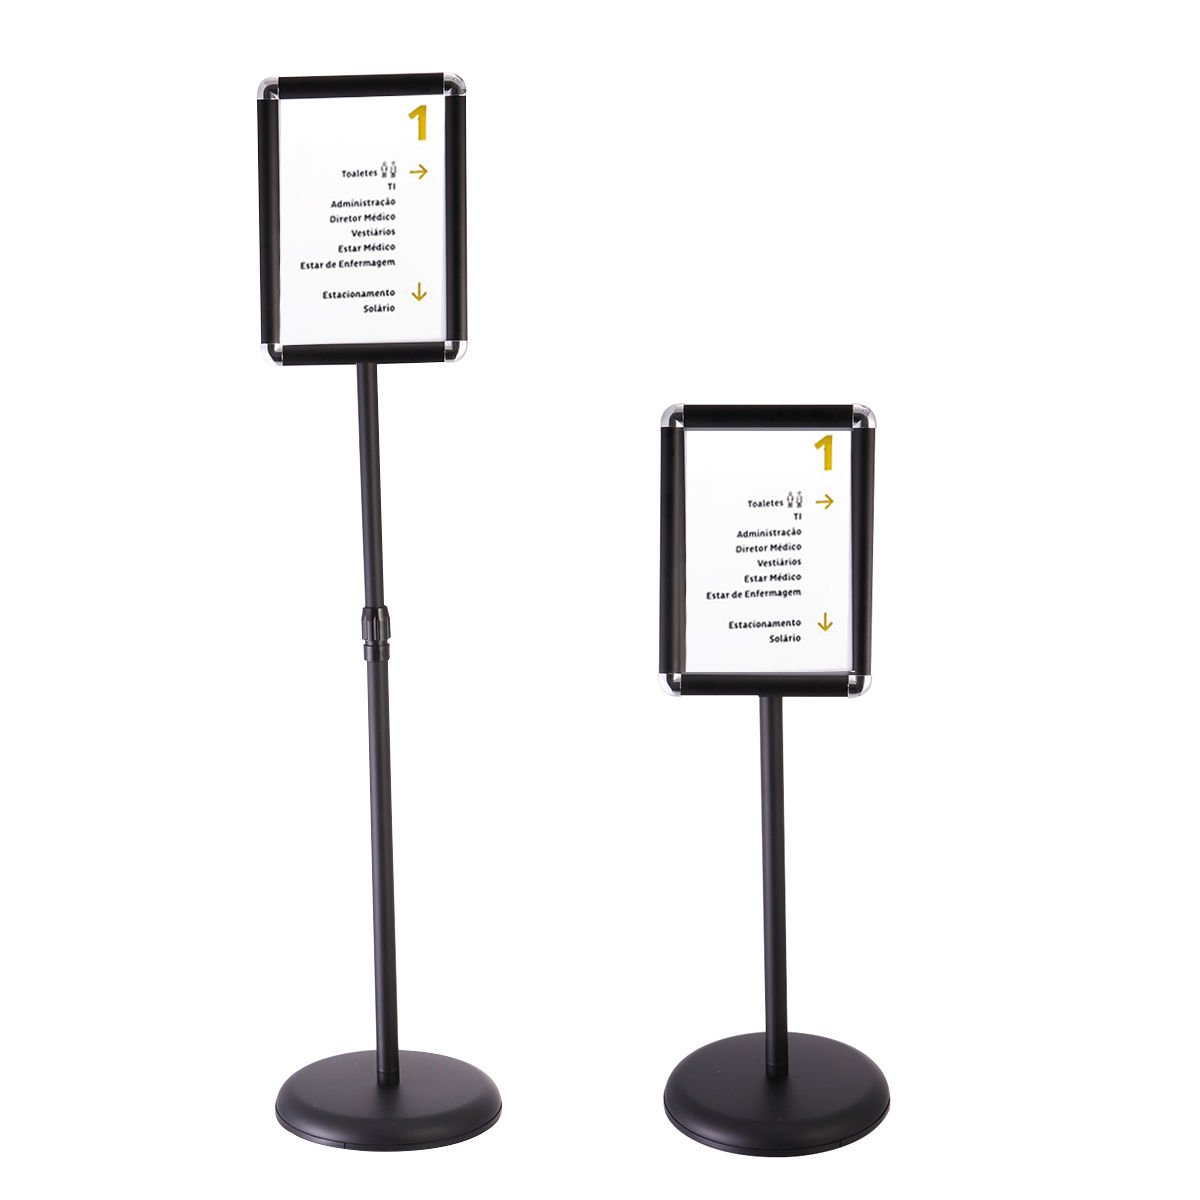 A4 Pedestal Sign Holder Floor Stand Adjustable with Telescoping Post Black